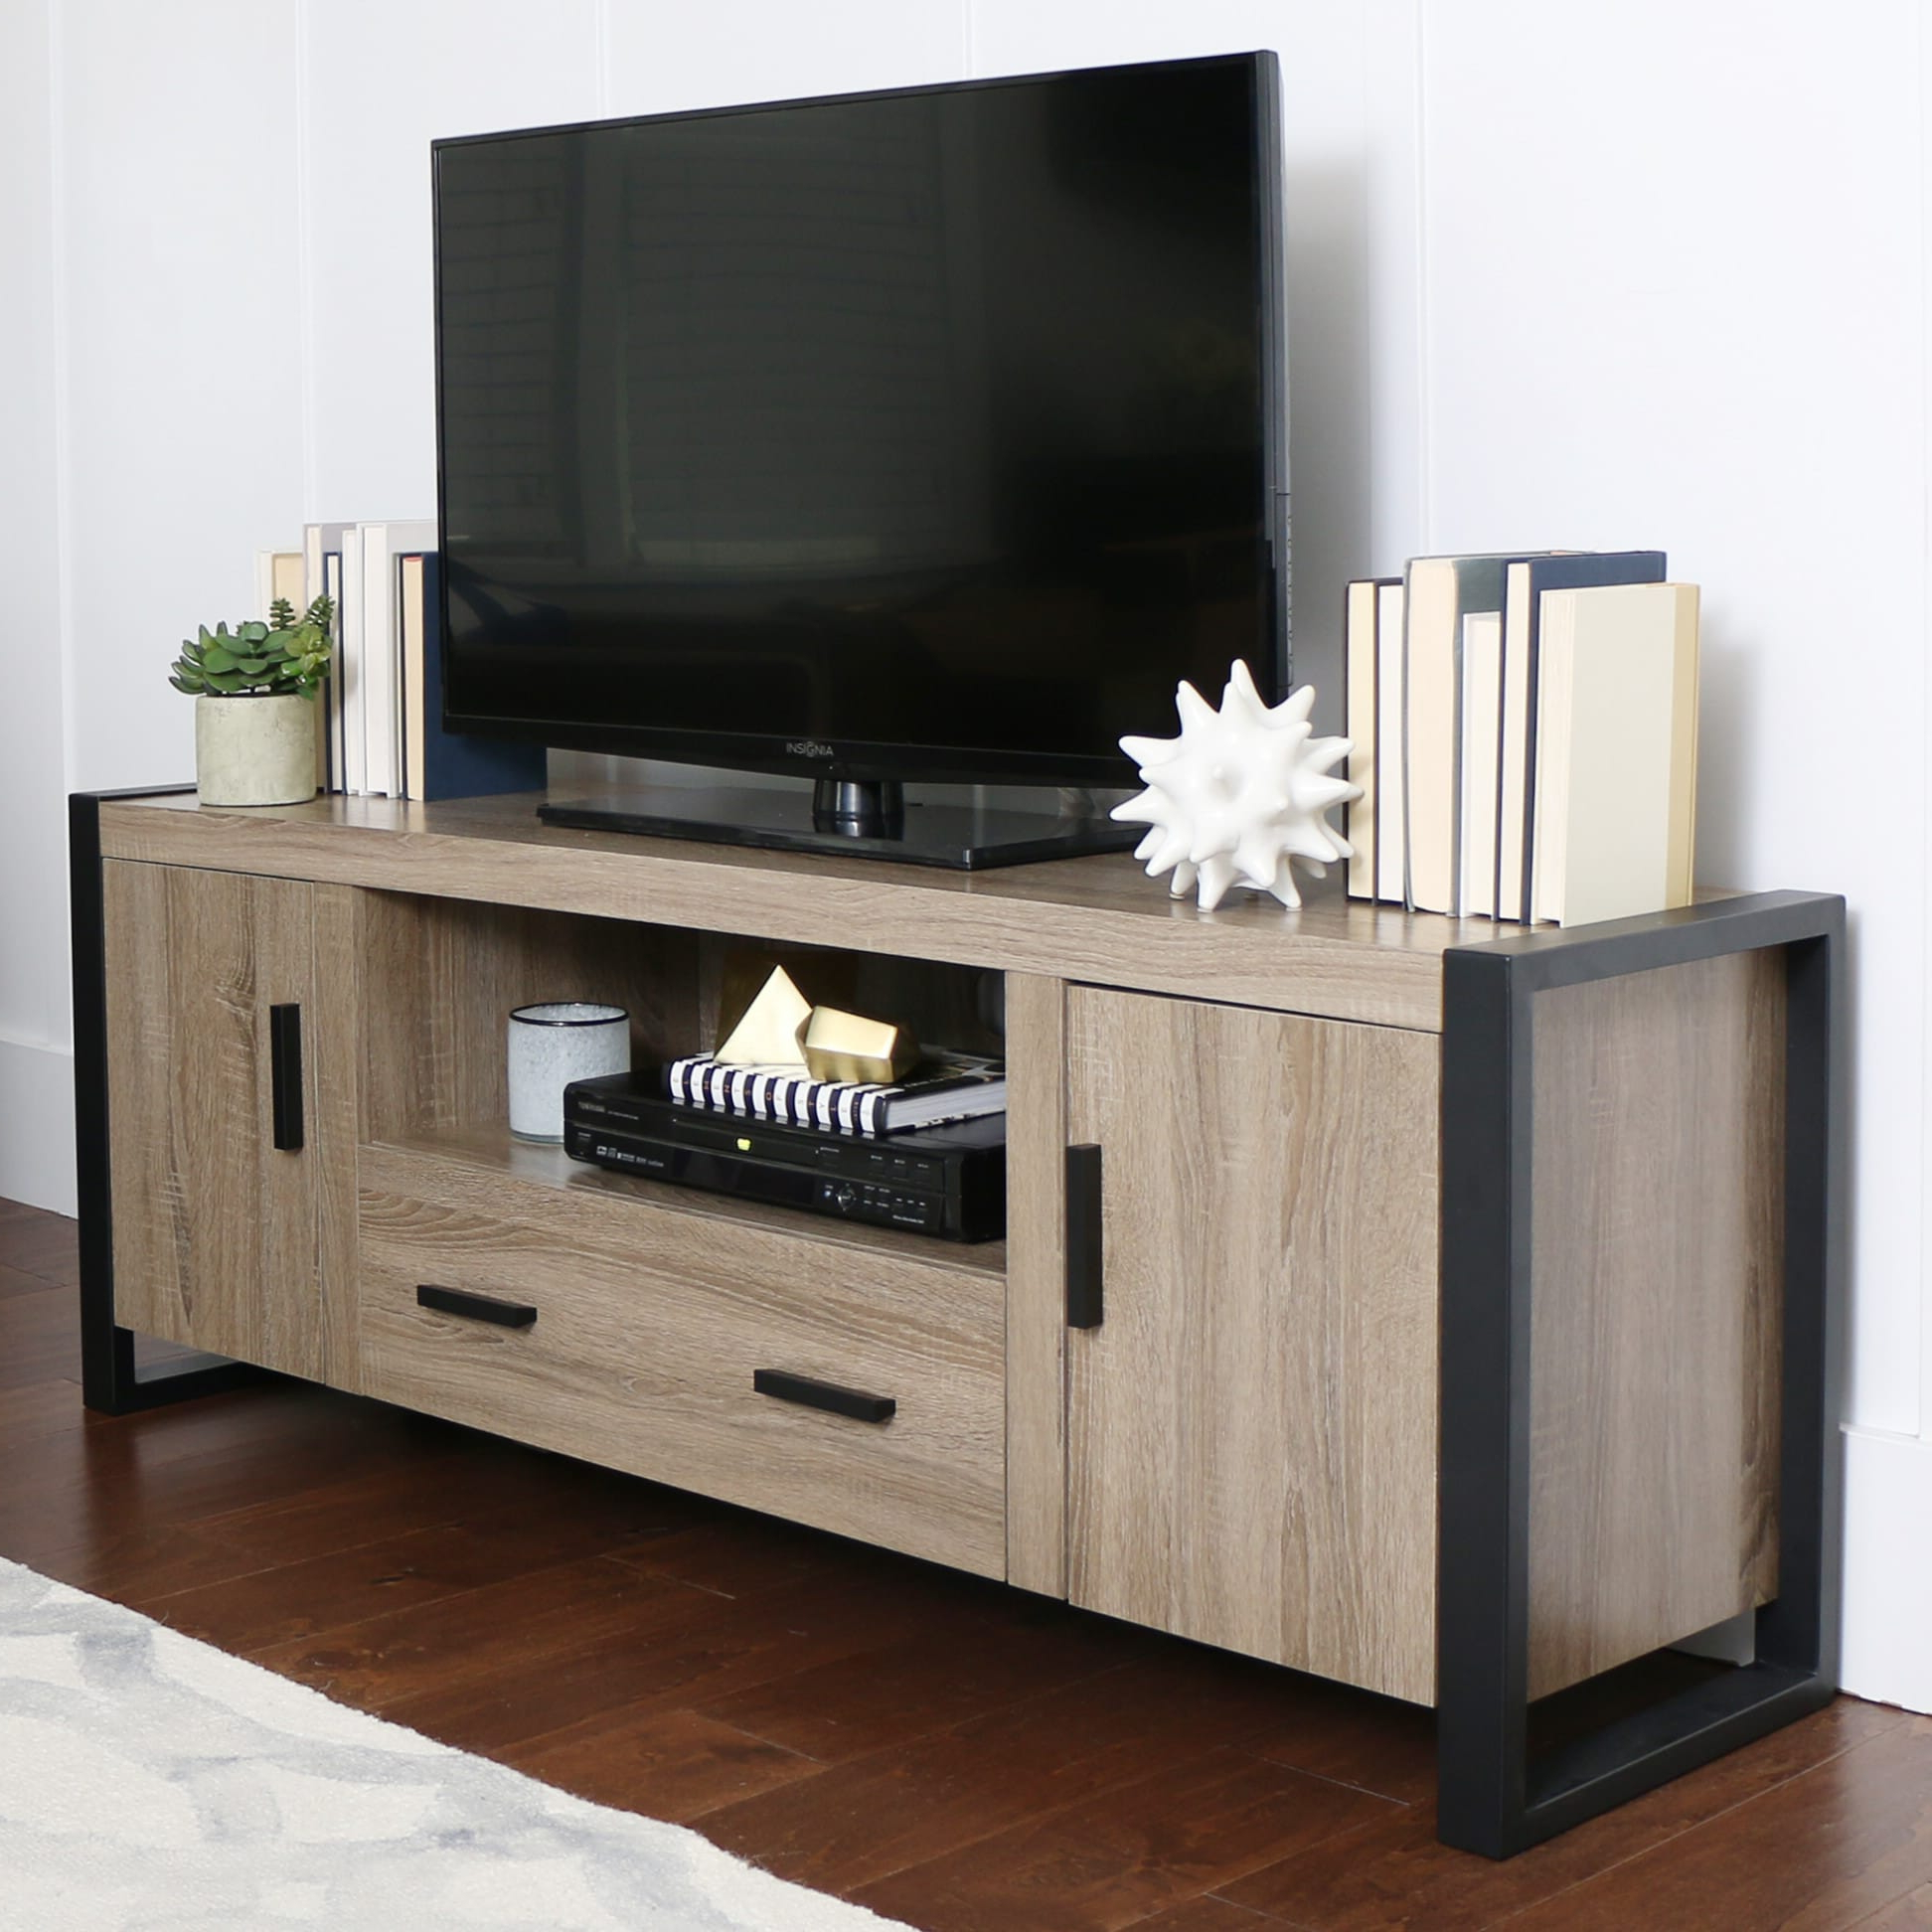 Walker Edison Contemporary Tall Tv Stands Pertaining To Widely Used Urban Blend 60 Inch Tv Stand – Ash Grey/blackwalker Edison (View 9 of 10)